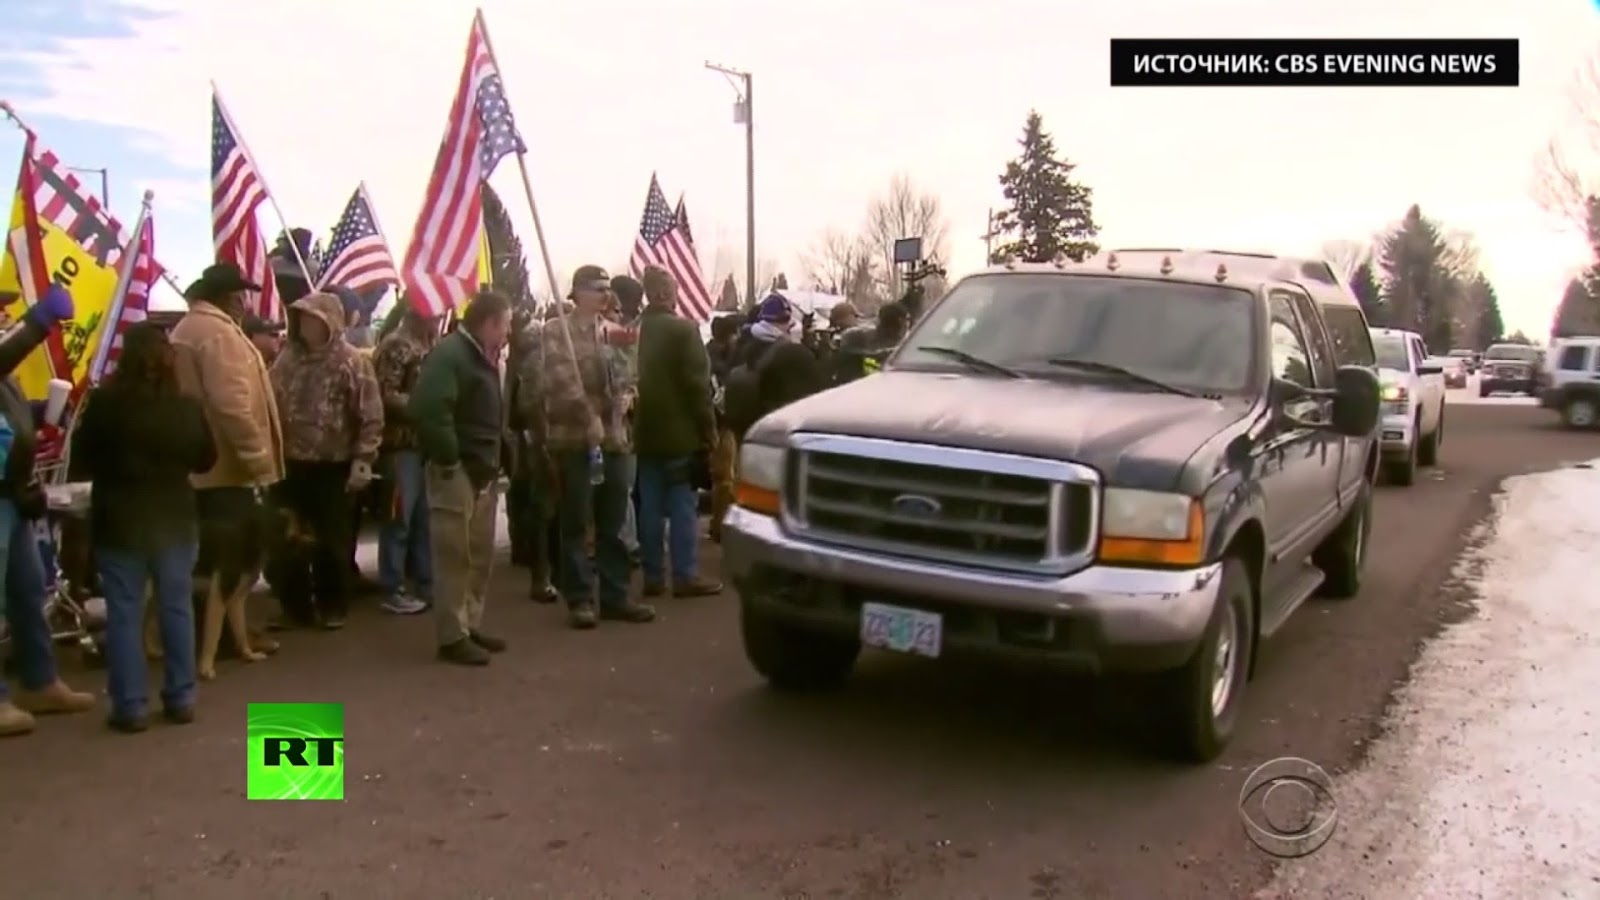 Russian media predicted the collapse of the USA during the farmers' protests in Oregon. Its messagingfor theevents was similar to those which is employed to describe the Euromaidan revolution in Ukraine.